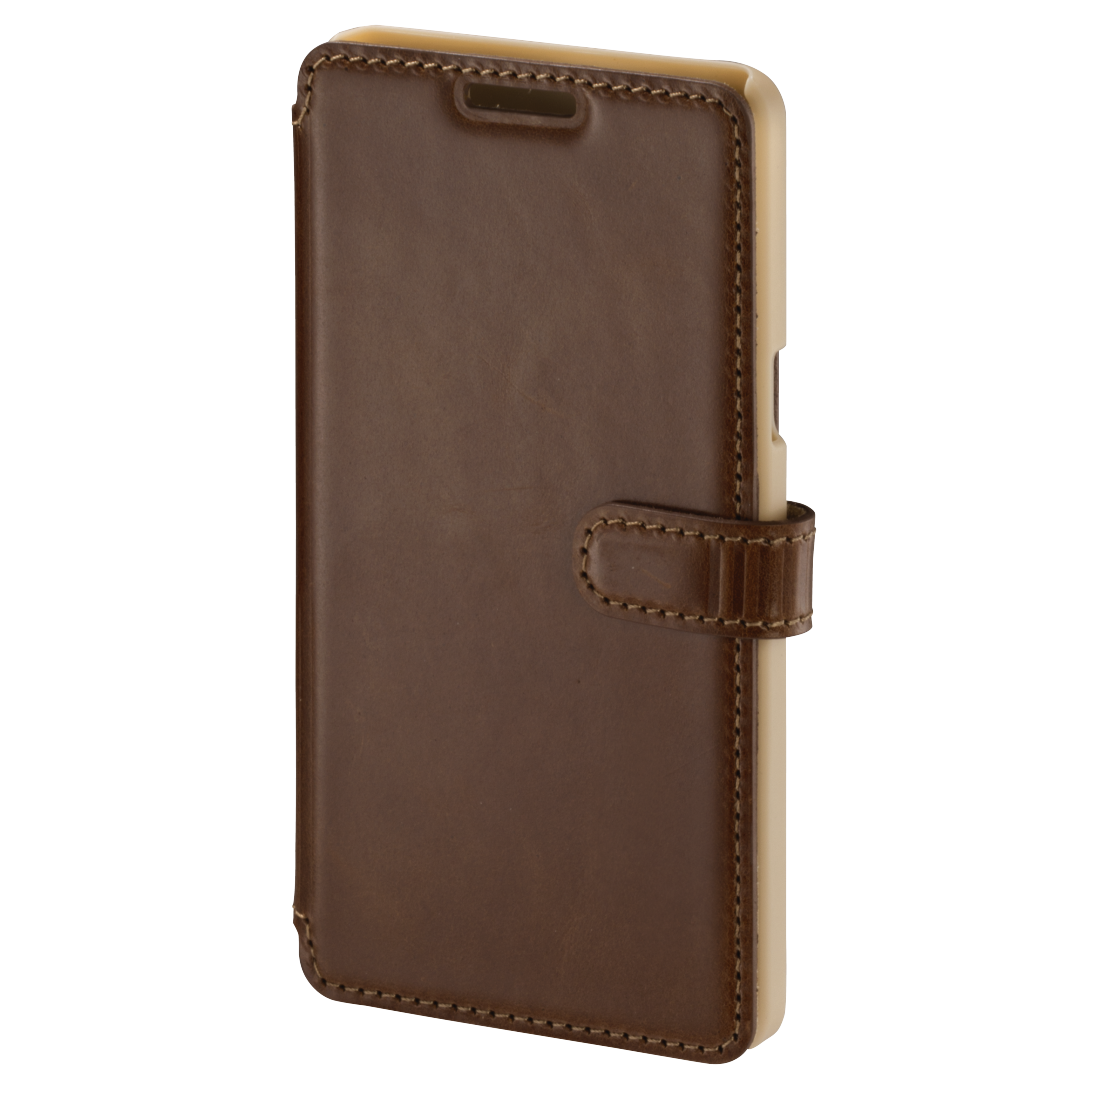 abx High-Res Image - Hama, Prime Line Portfolio for Samsung Galaxy A5, country brown